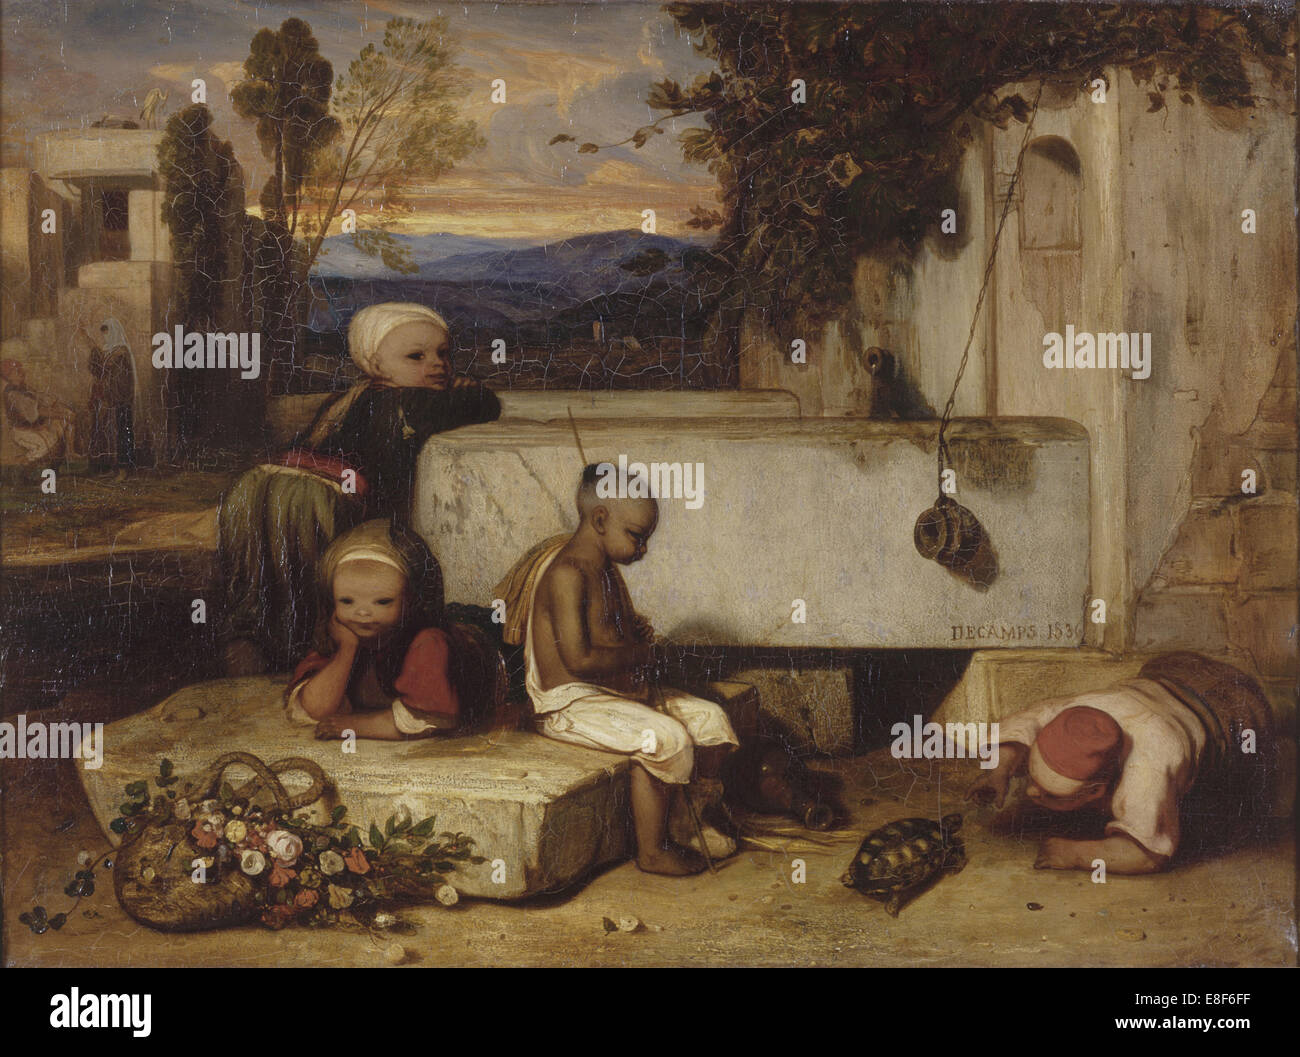 Turkish children playing with a turtle (Souvenir de la Turquie d'Asie). Artist: Decamps, Alexandre Gabriel (1803 - Stock Image